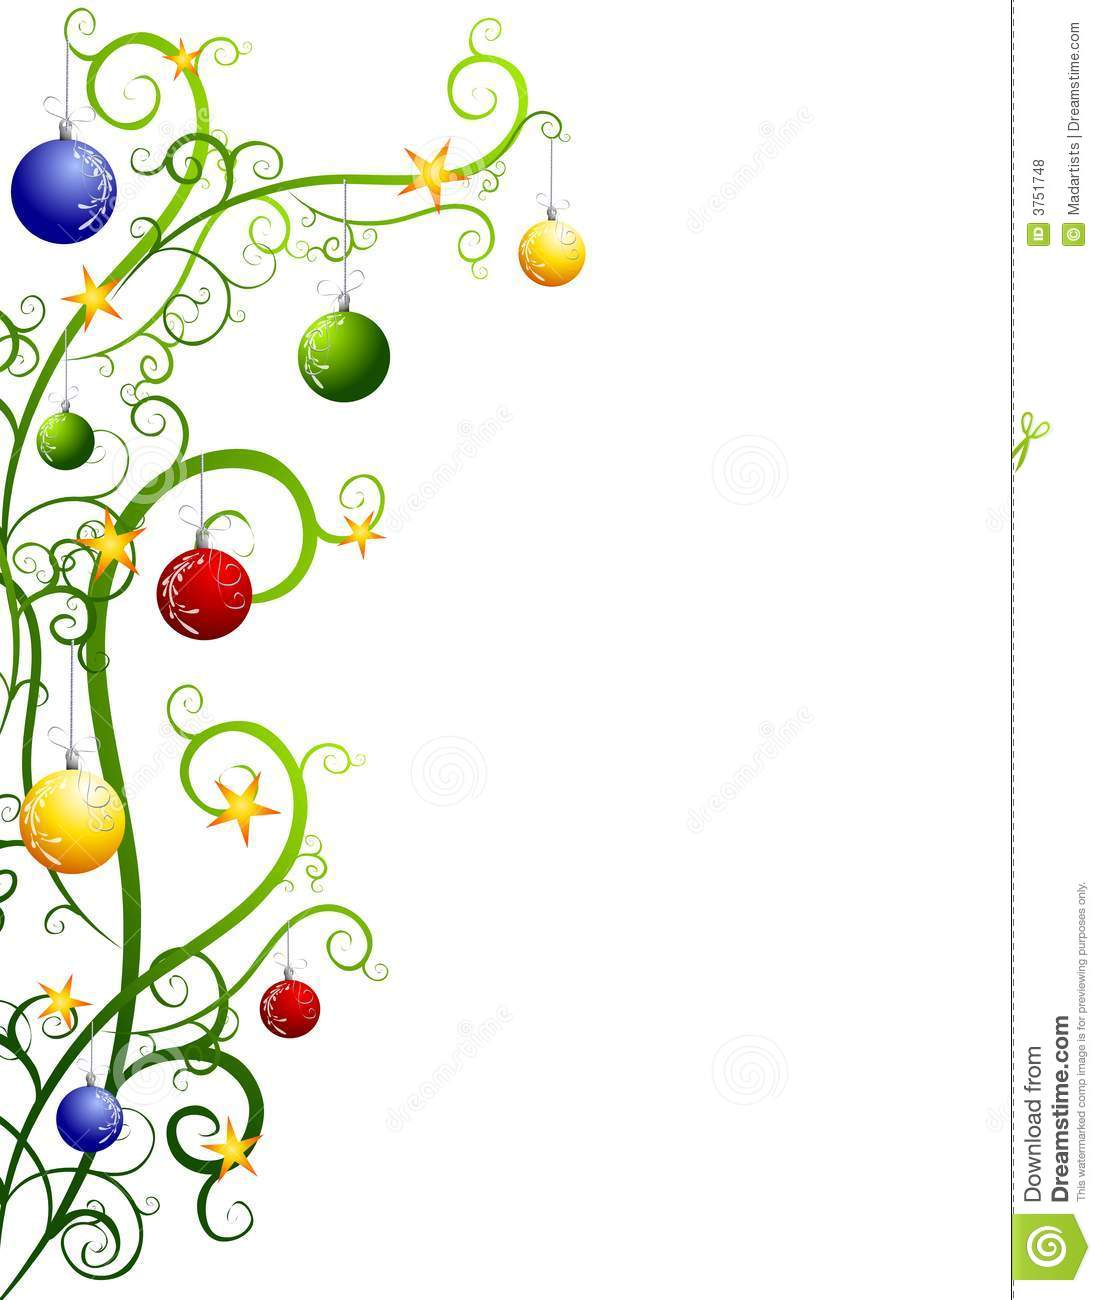 Christmas ornaments clipart printables free png royalty free download Hanging ornaments clipart printable green - ClipartFest png royalty free download